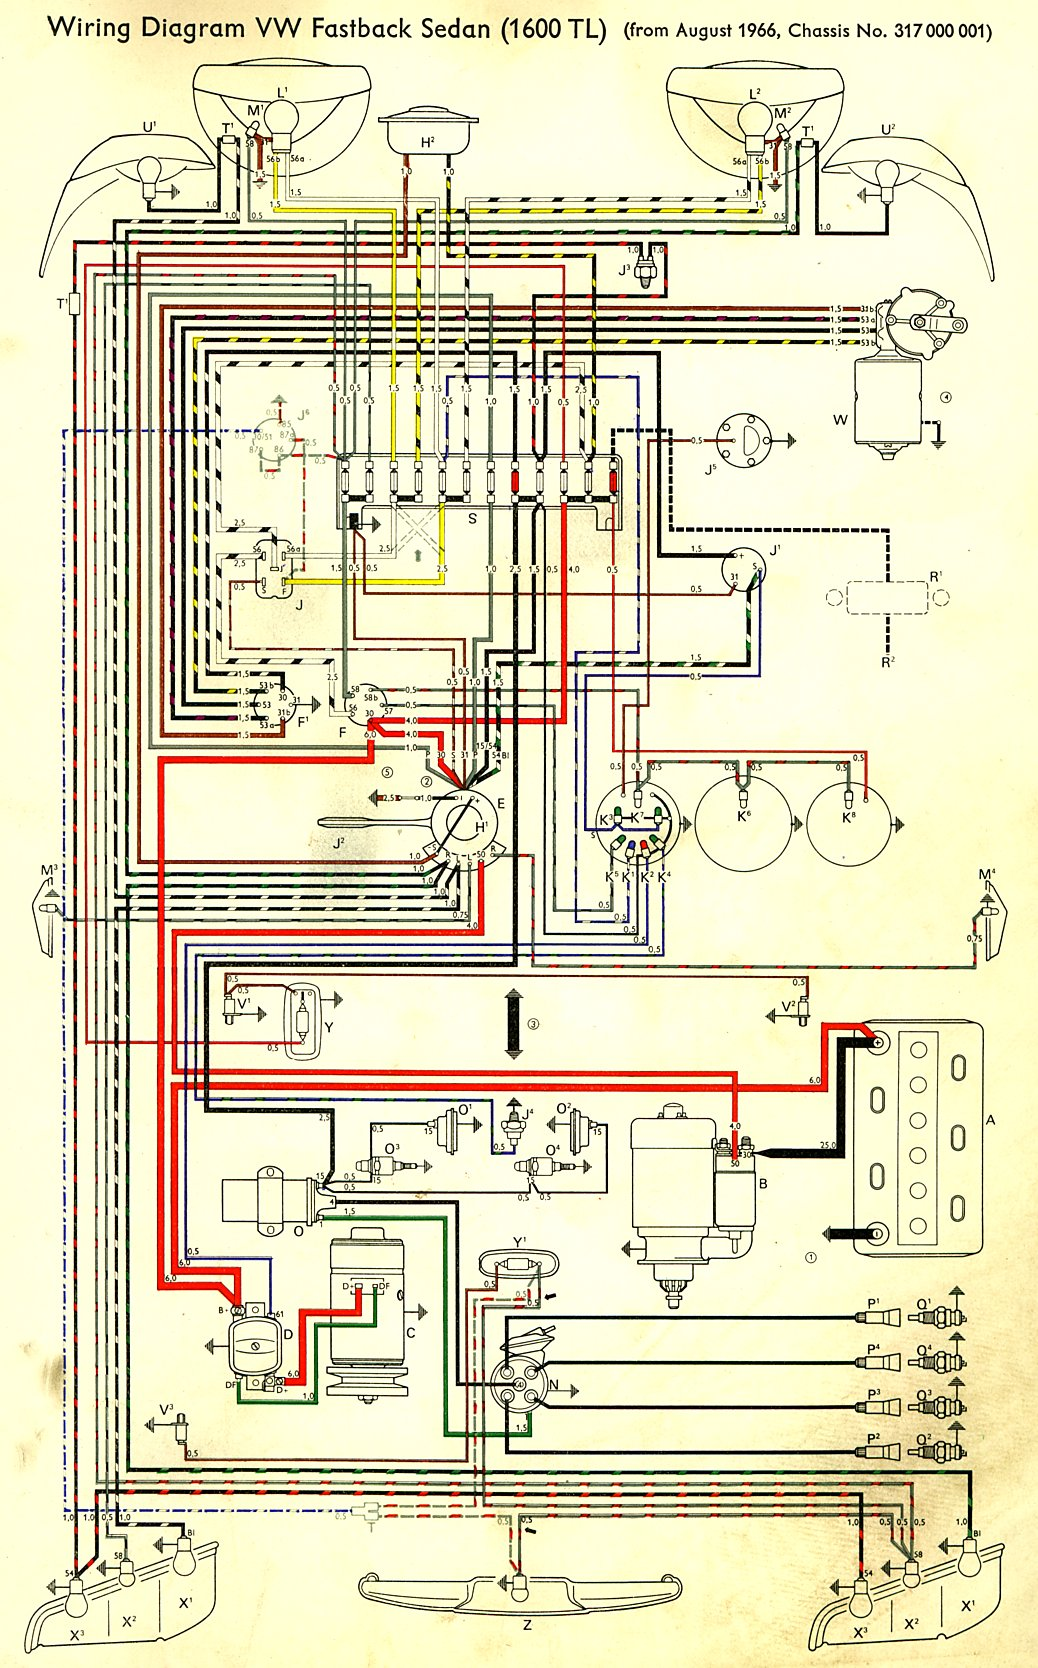 thesamba com type 3 wiring diagrams rh thesamba com VW Bug Wiring-Diagram VW Voltage Regulator Wiring Diagram